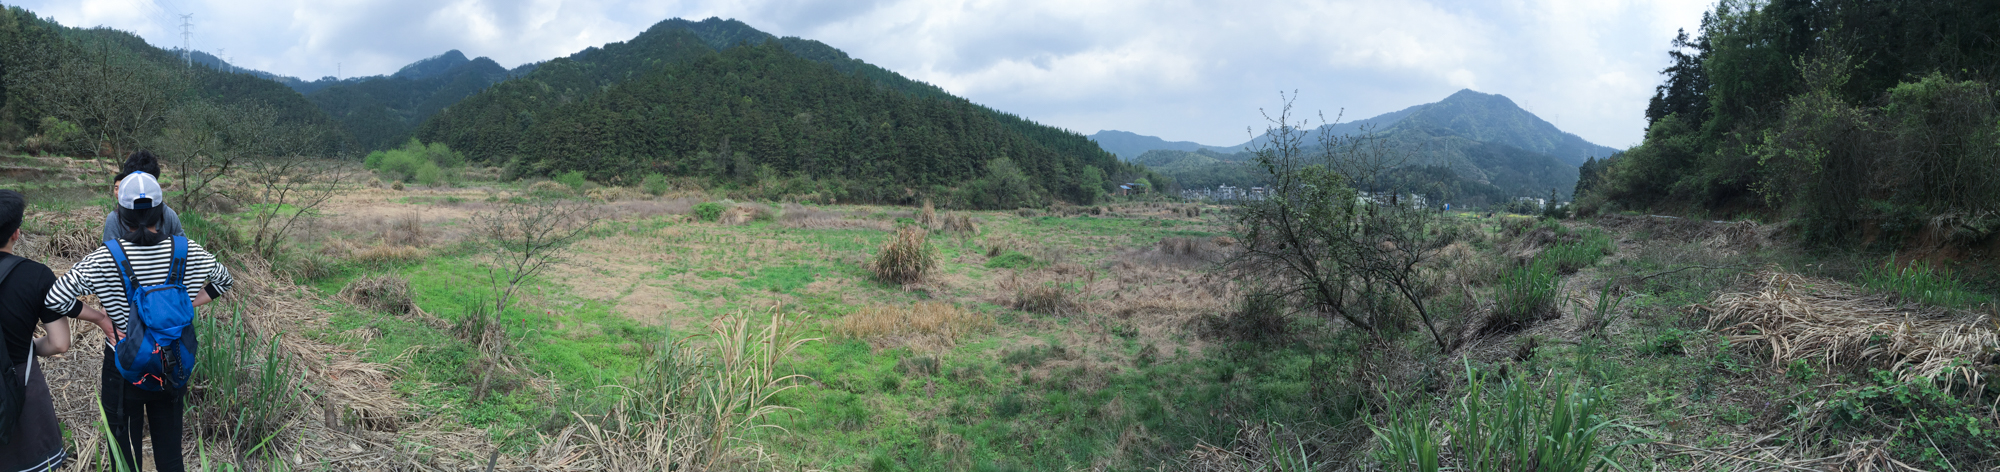 西朝坞山谷中的一块野地 A piece of wild land in the valley of Xichaowu _.jpg